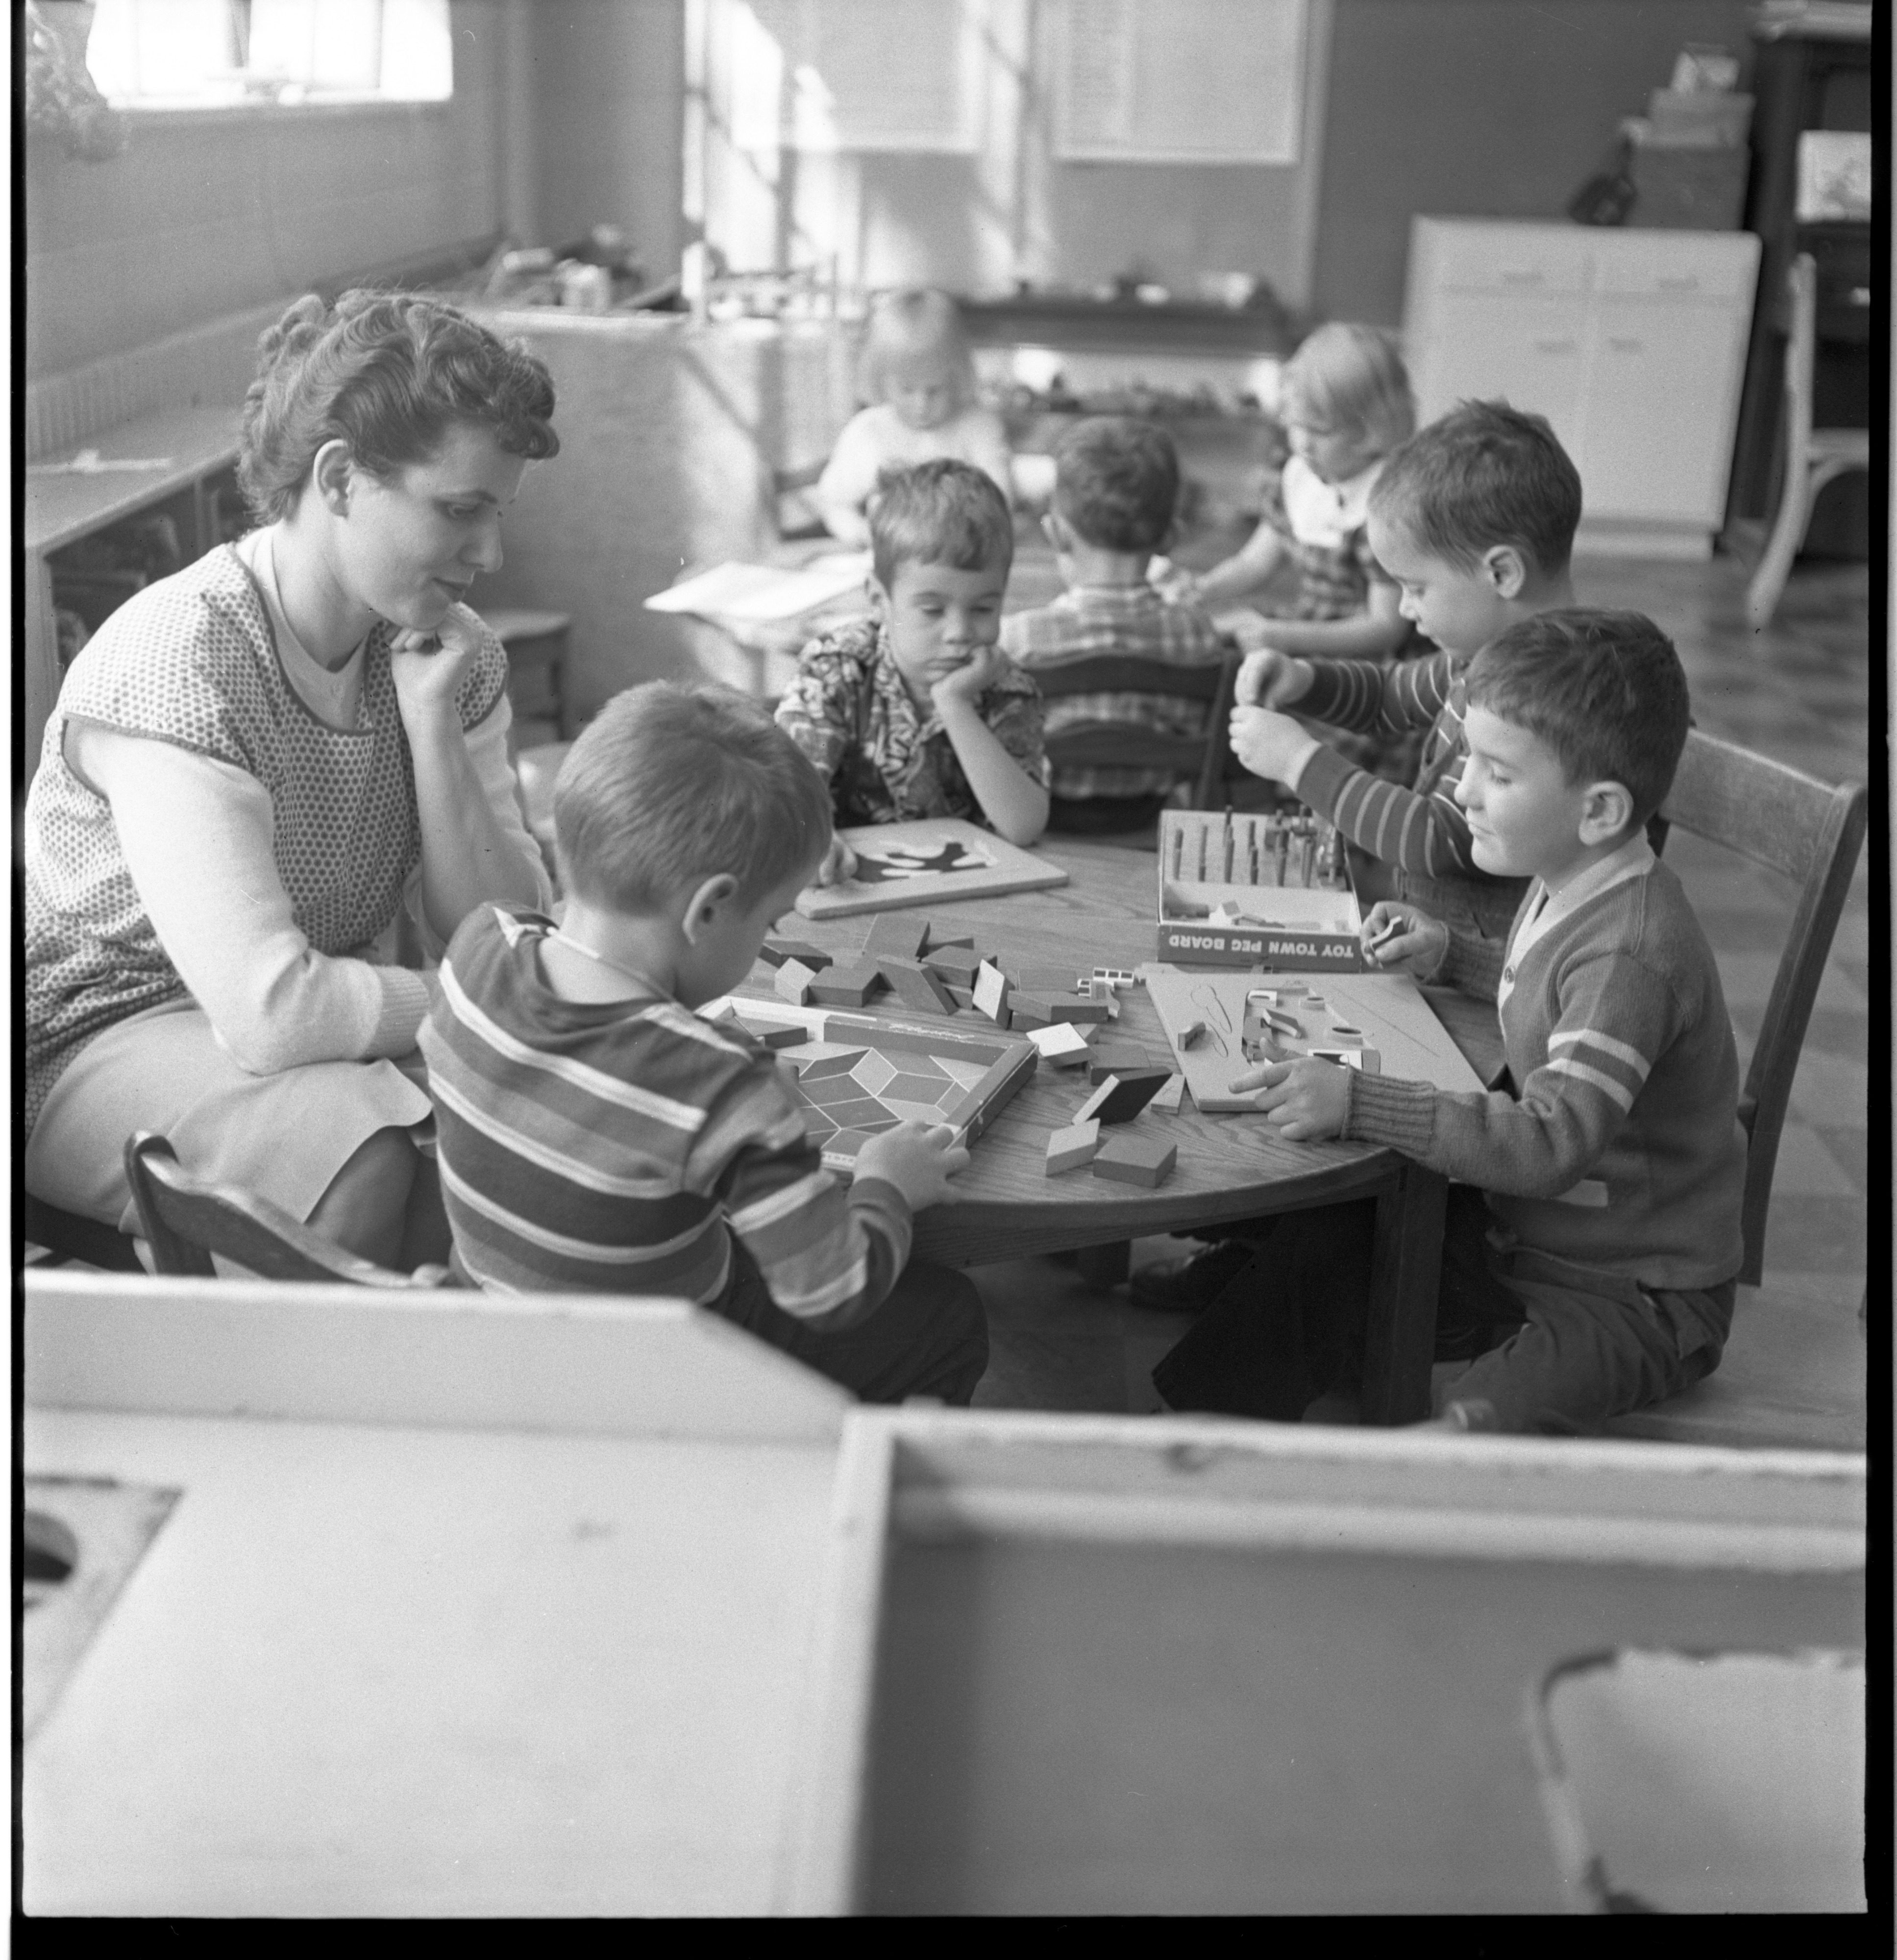 Children Enjoy Free Time At The Ann Arbor Co-Operative Nursery School, January 1955 image